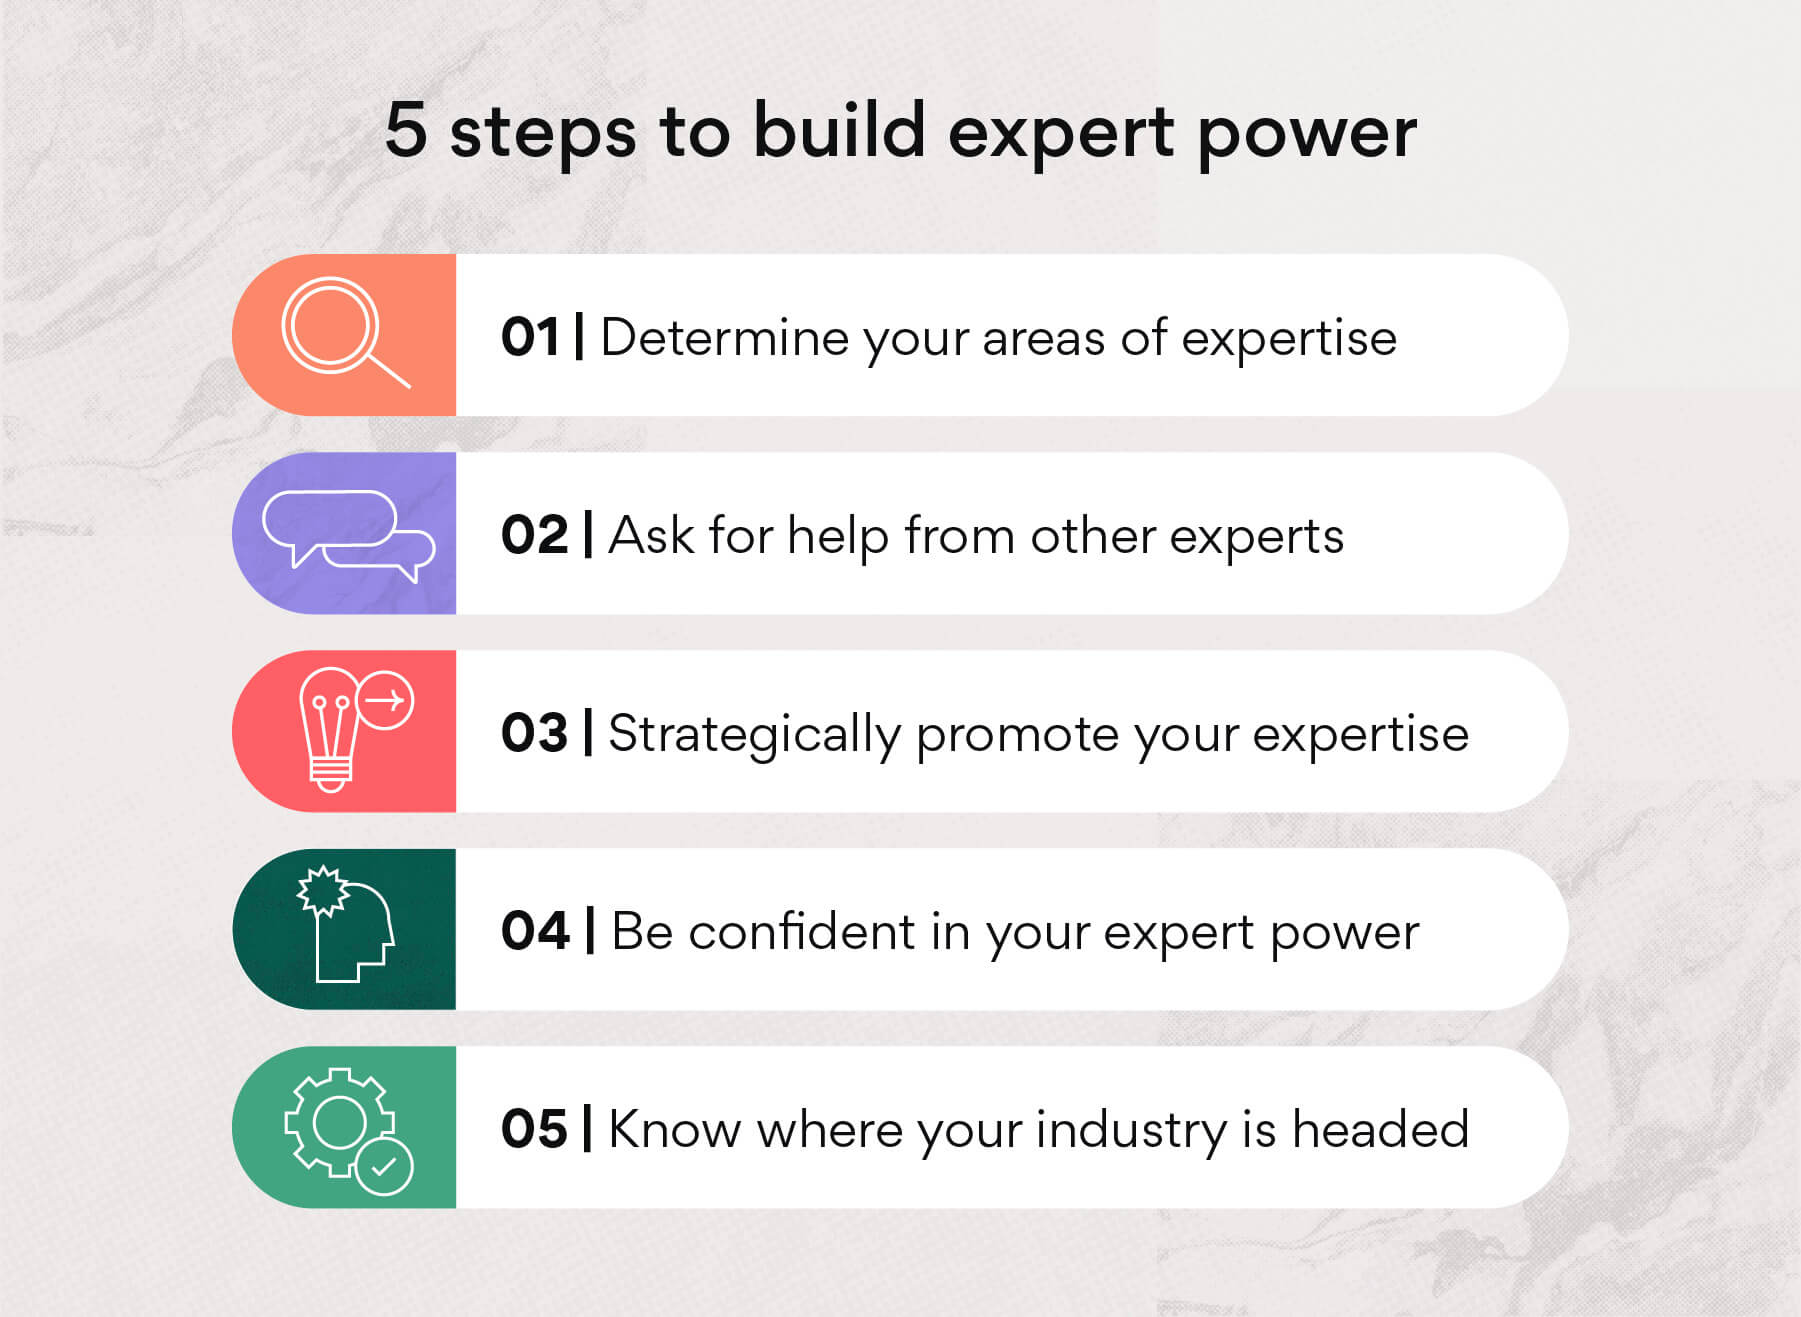 5 steps to build expert power